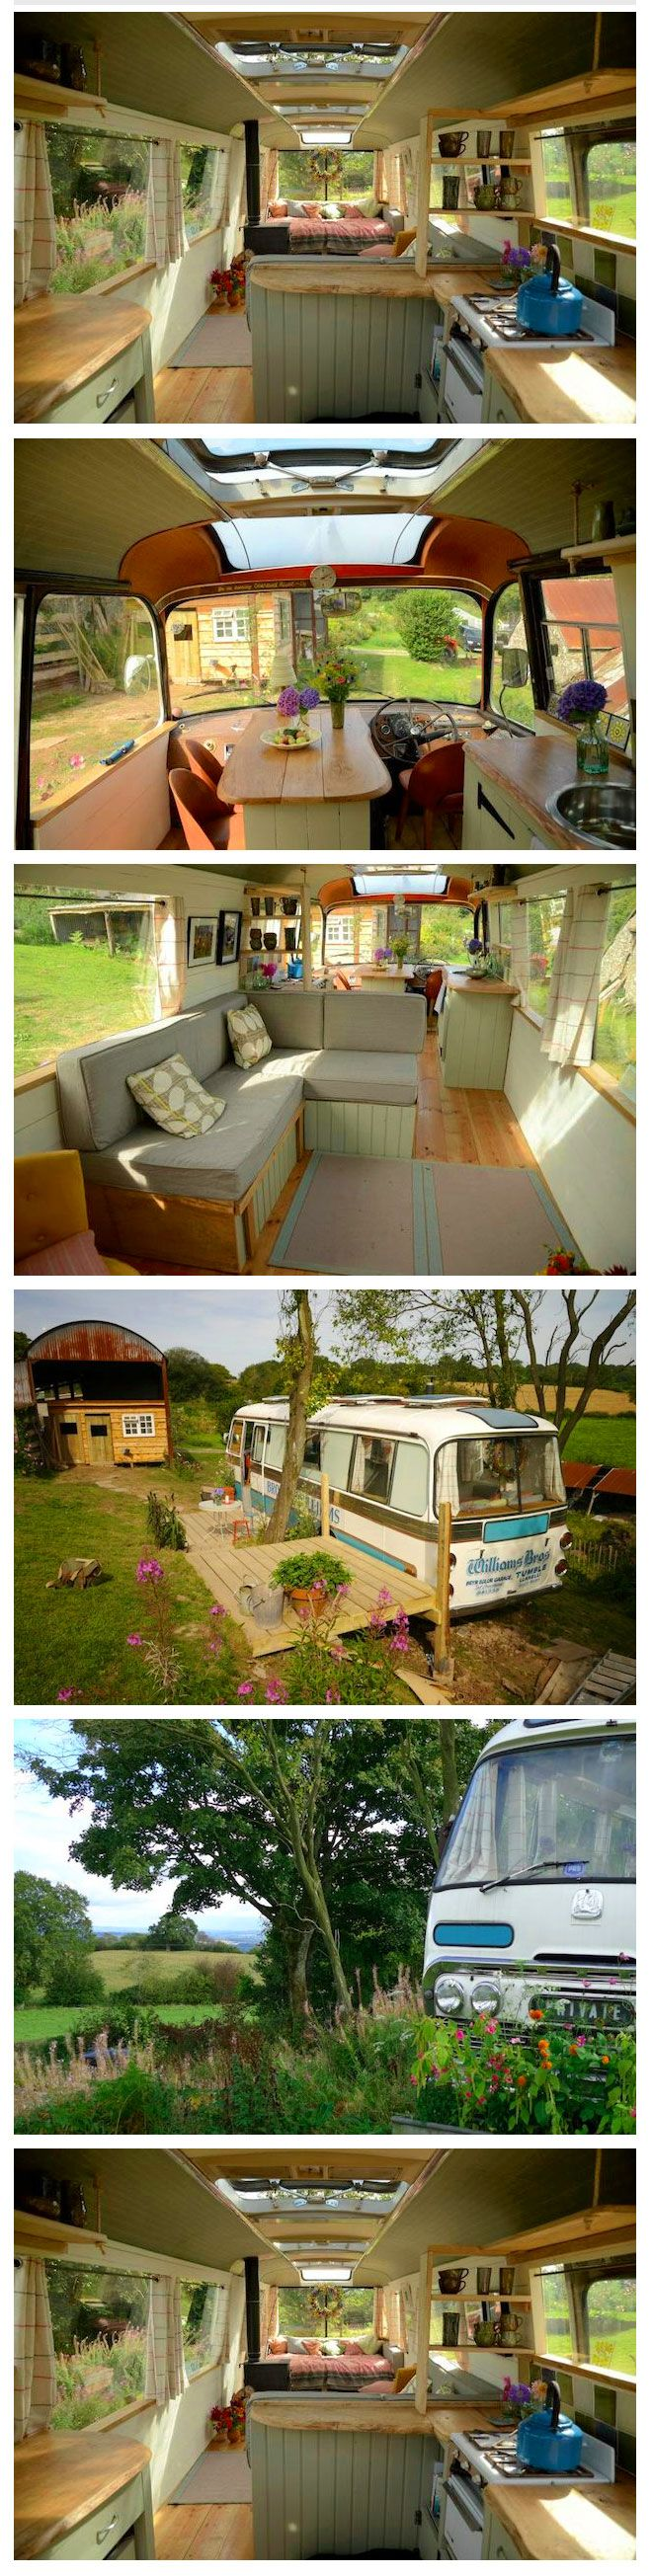 1280 Best King Images On Pinterest Cool Stuff Things And Etching Circuits At Home Geekdad This Family Transformed An Old School Bus Into A Chic Youll Find Solar Panels For Efficiency Along With Wood Burning Stove Other